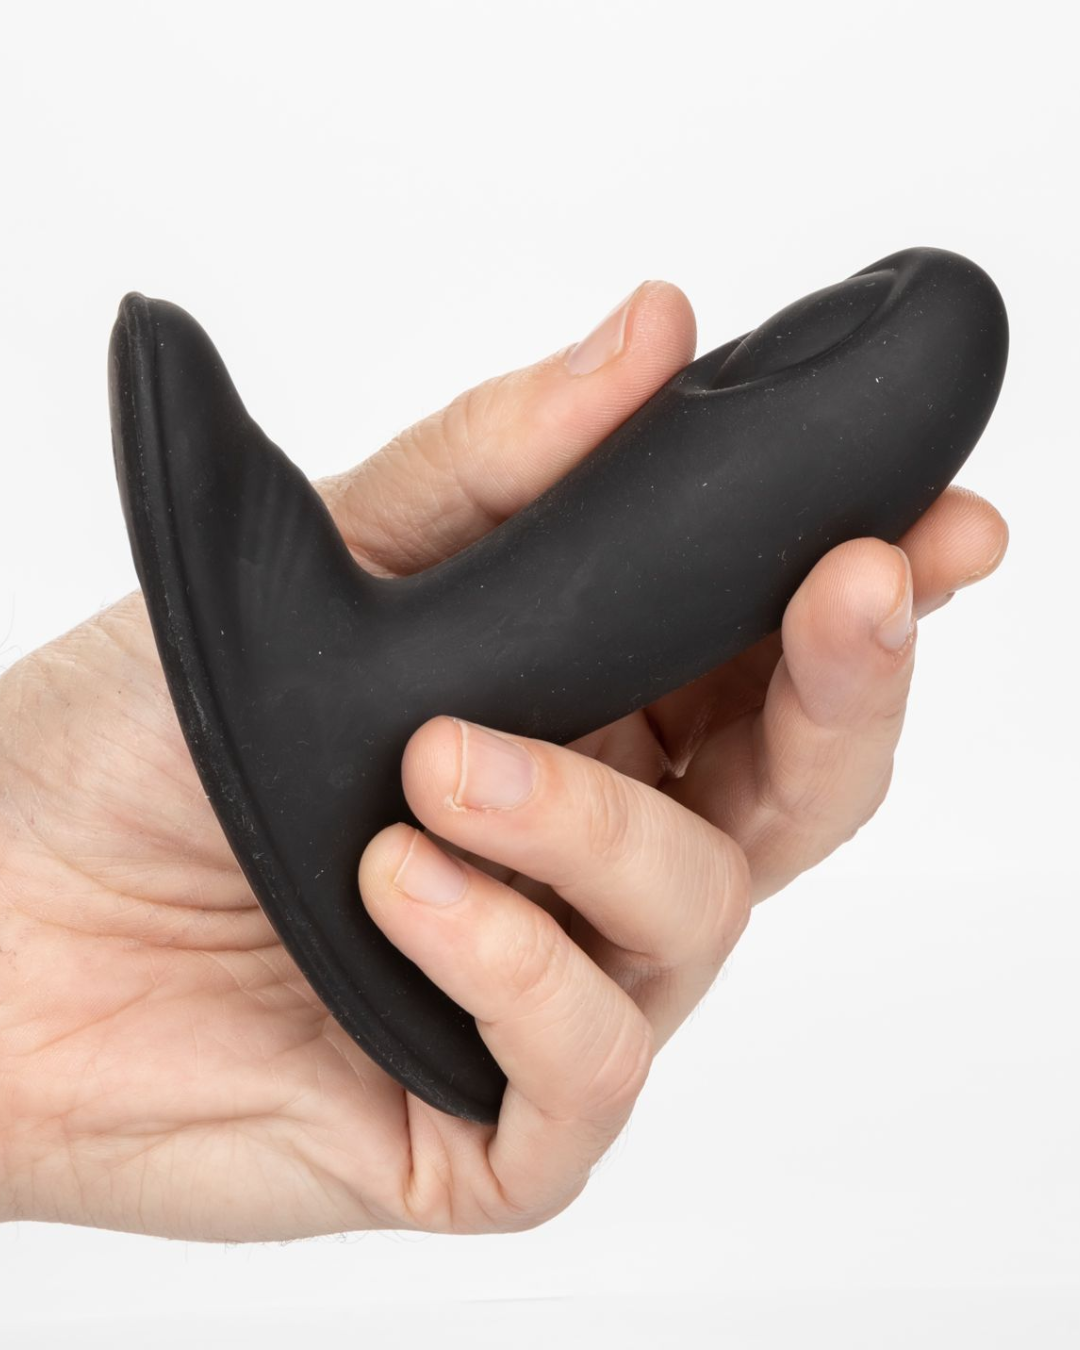 Eclipse™ Wristband Remote Pulsing Silicone Anal Prostate Probe